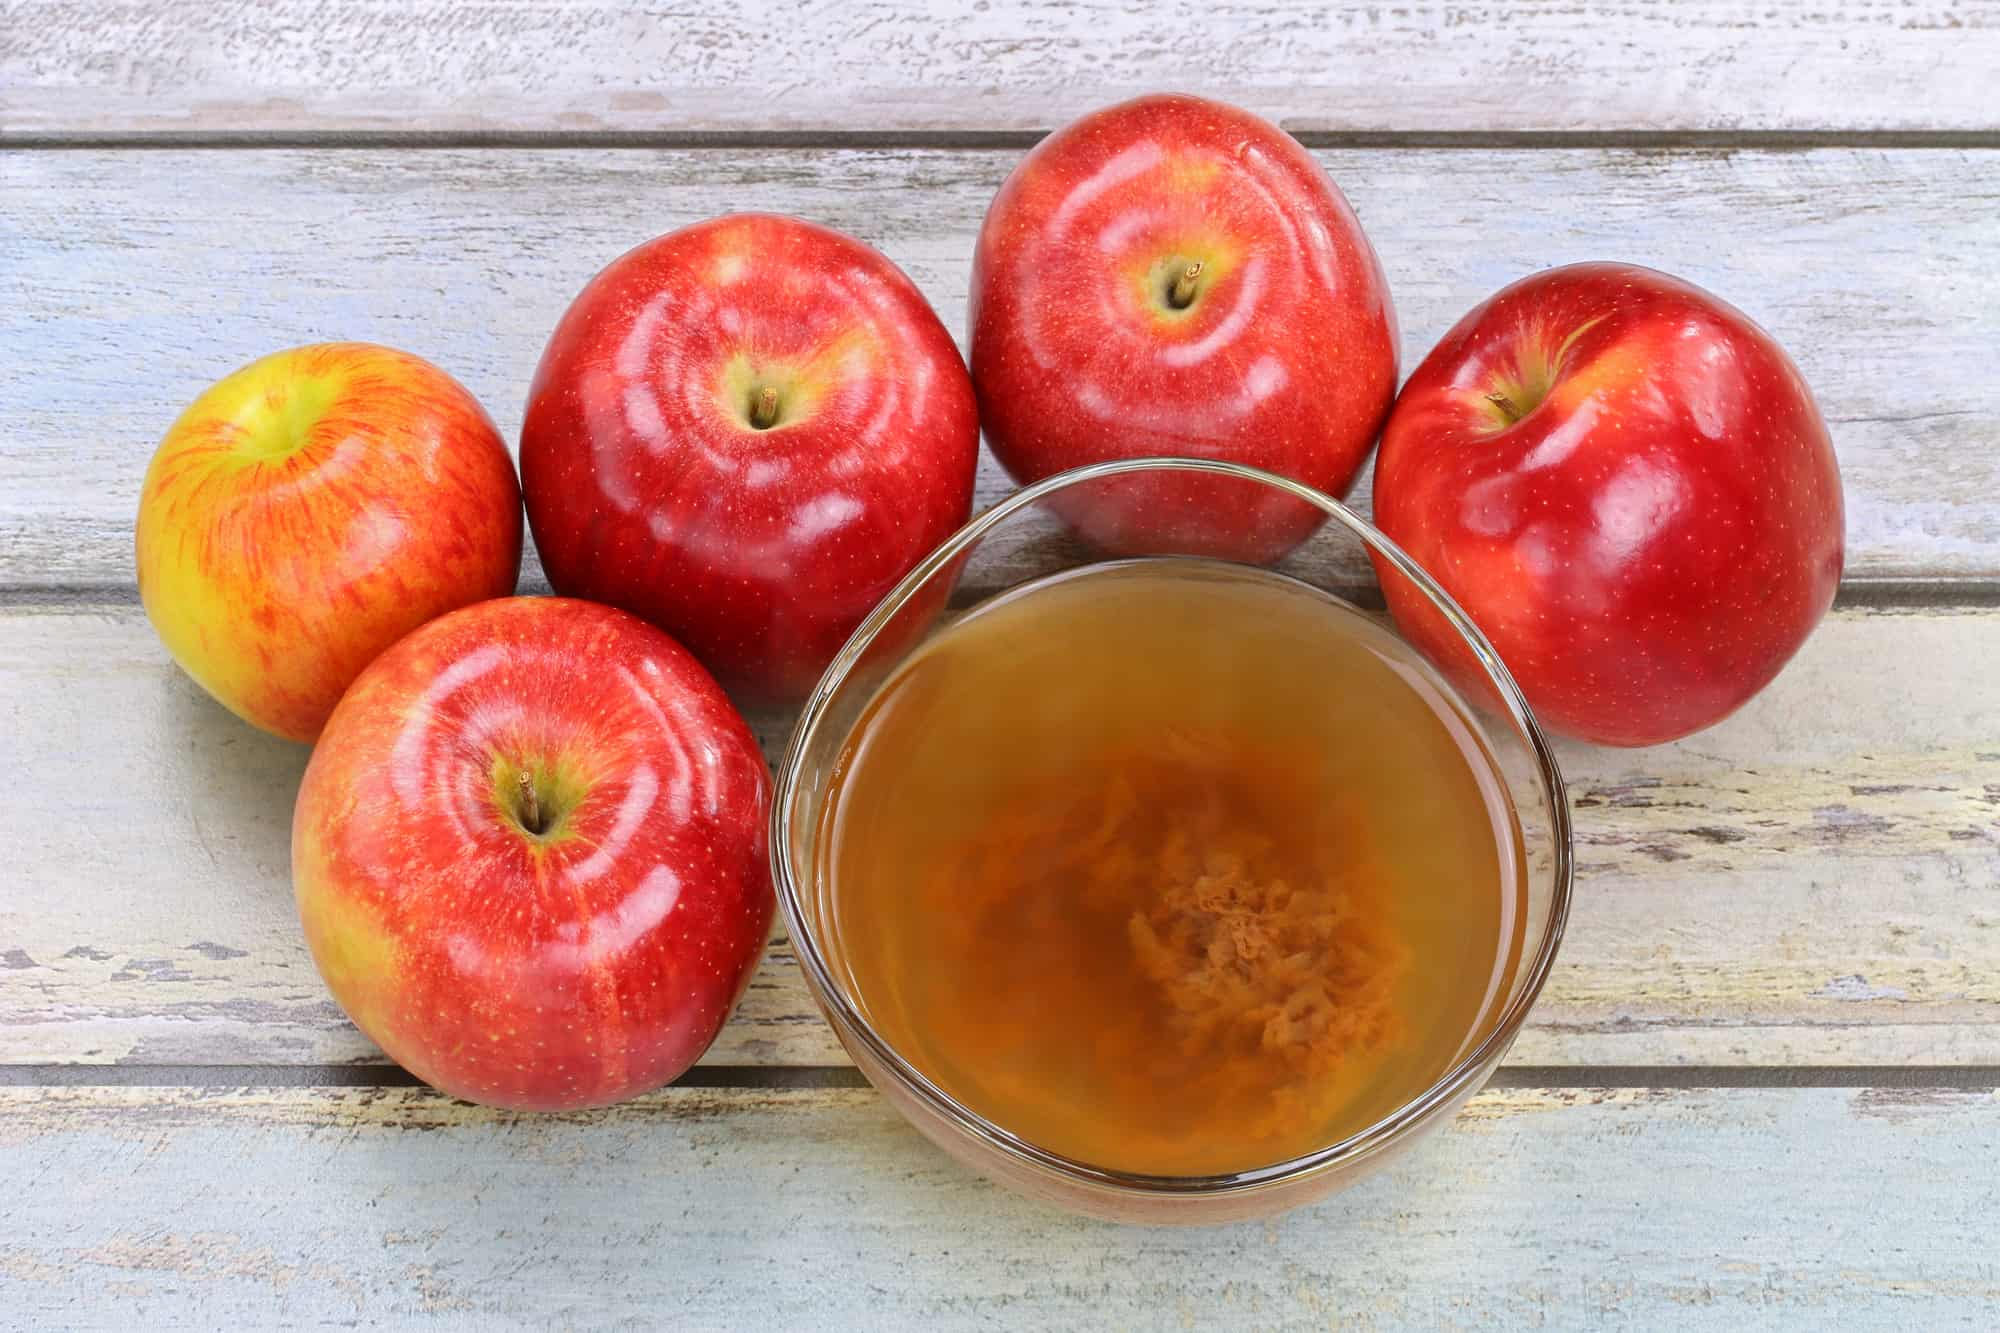 Apple cider vinegar with mother bacteria